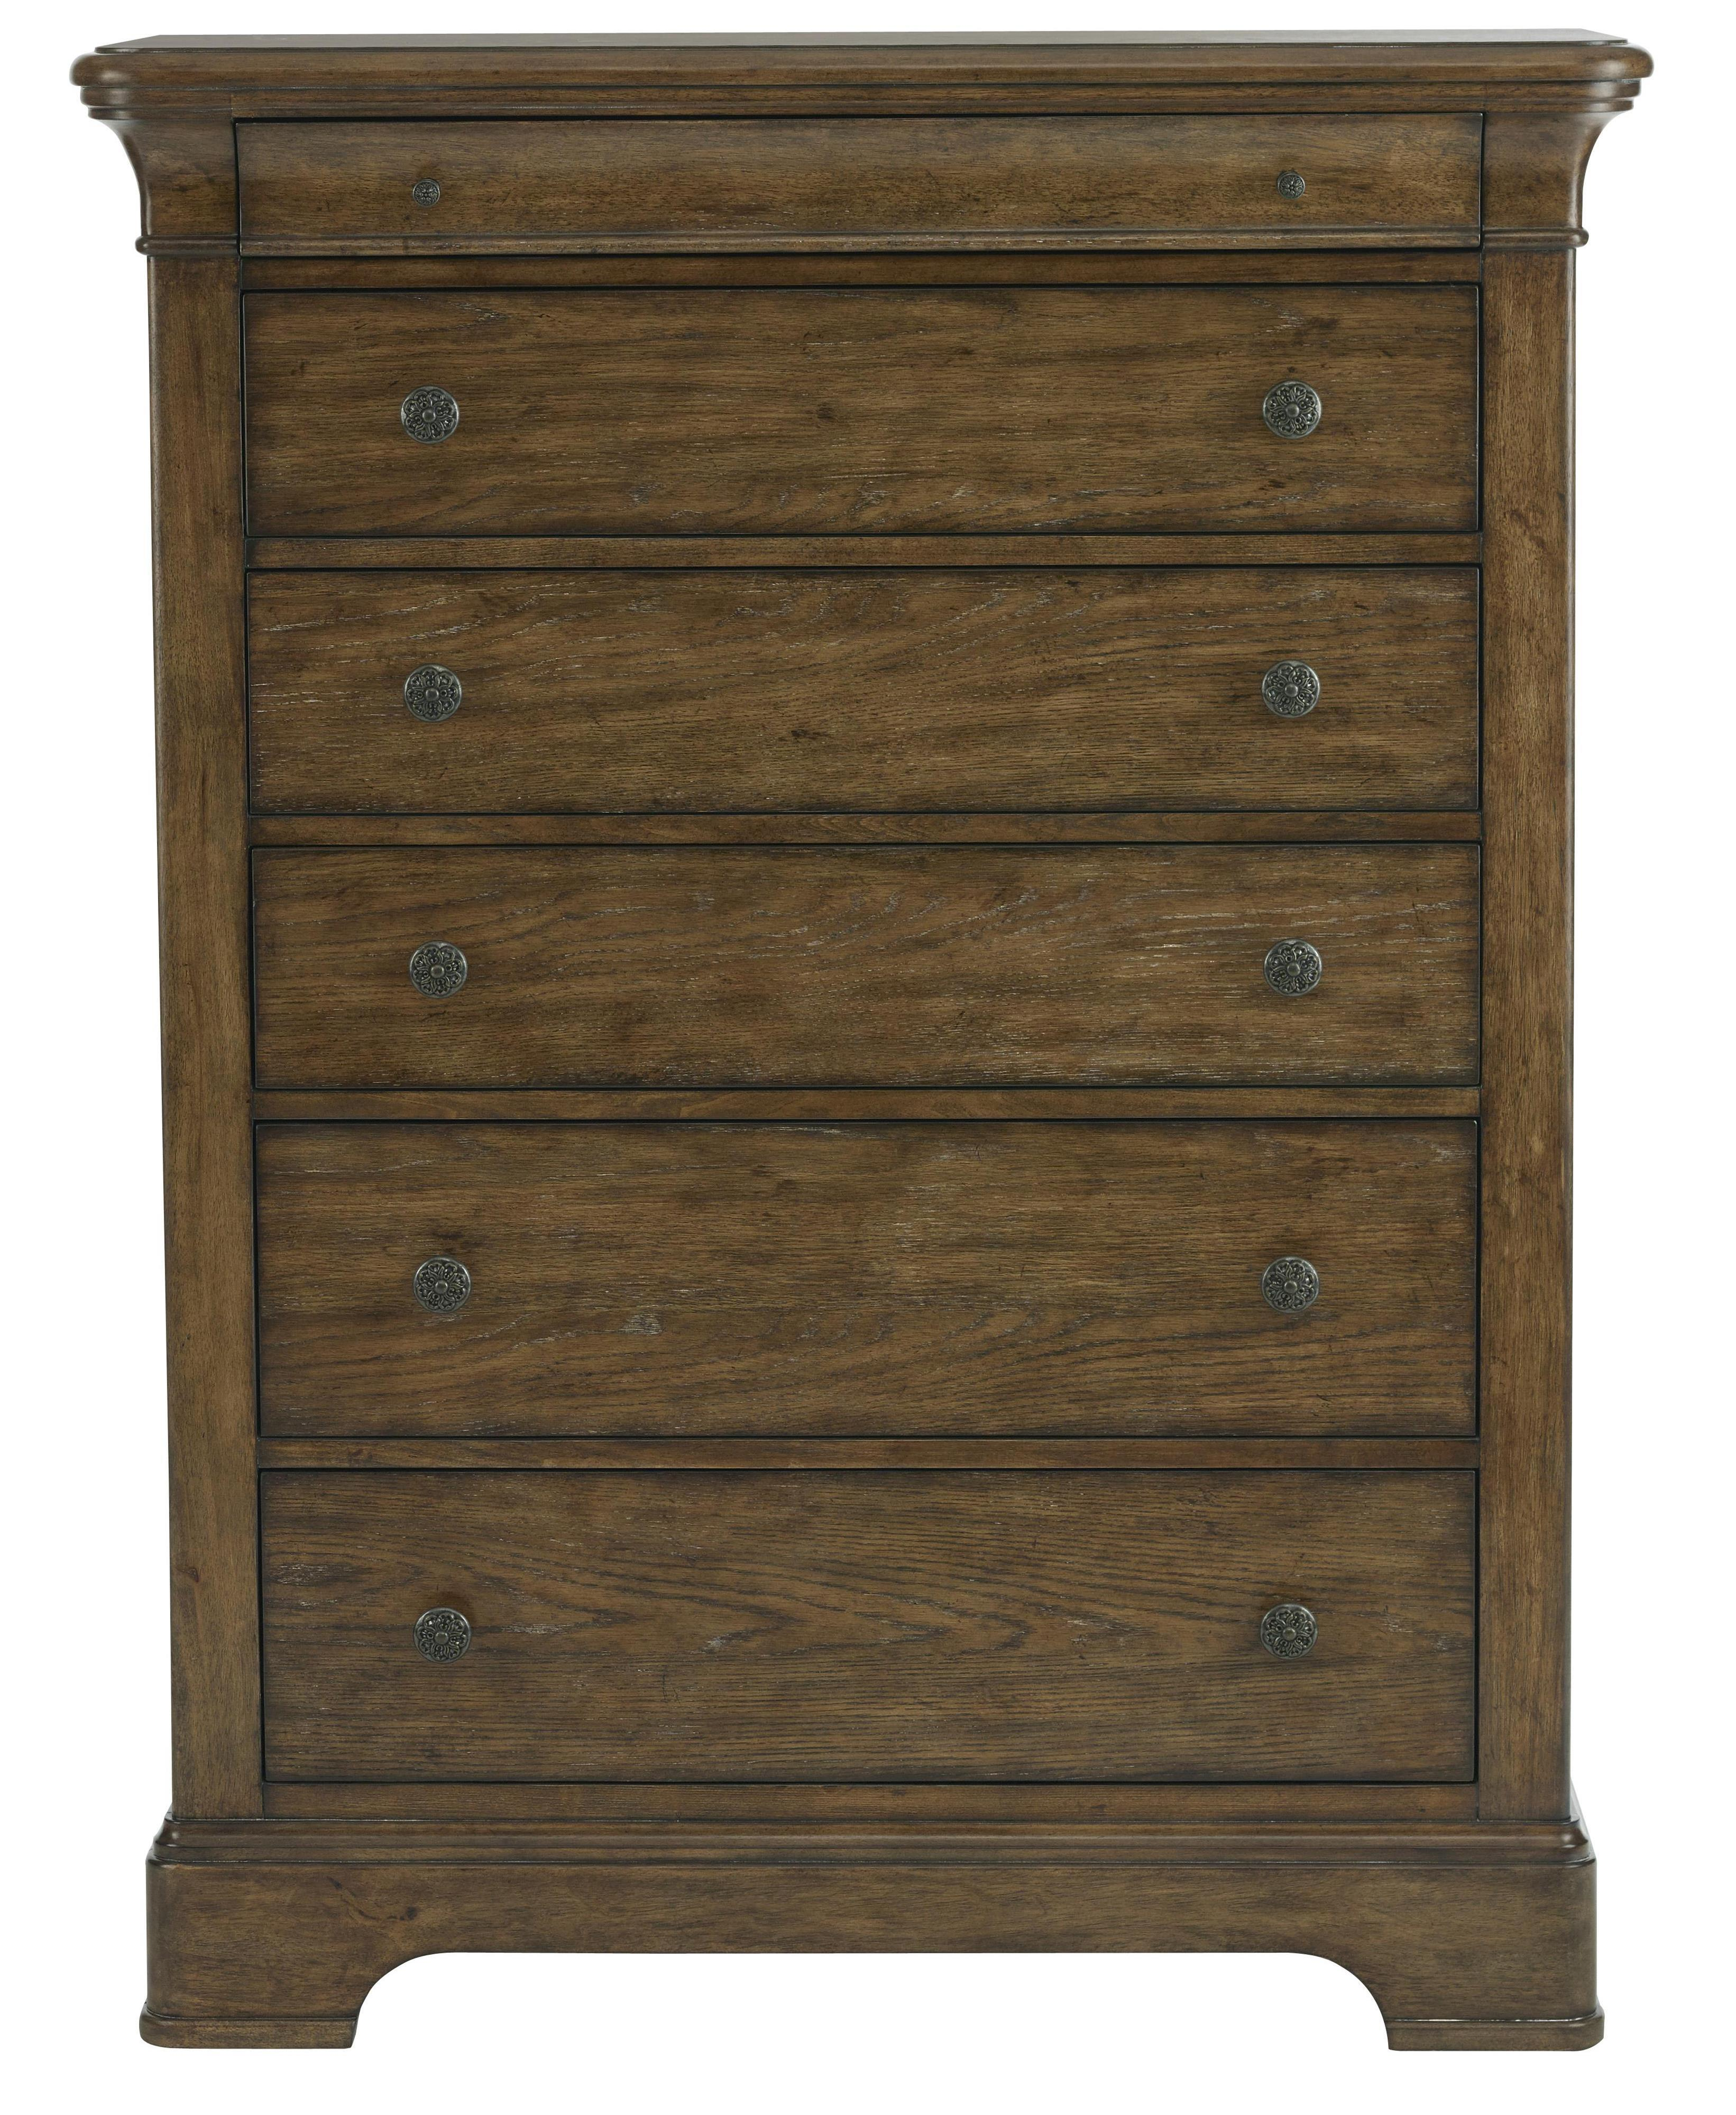 Belfort Select Virginia Mill Tall Drawer Chest - Item Number: 8854-040